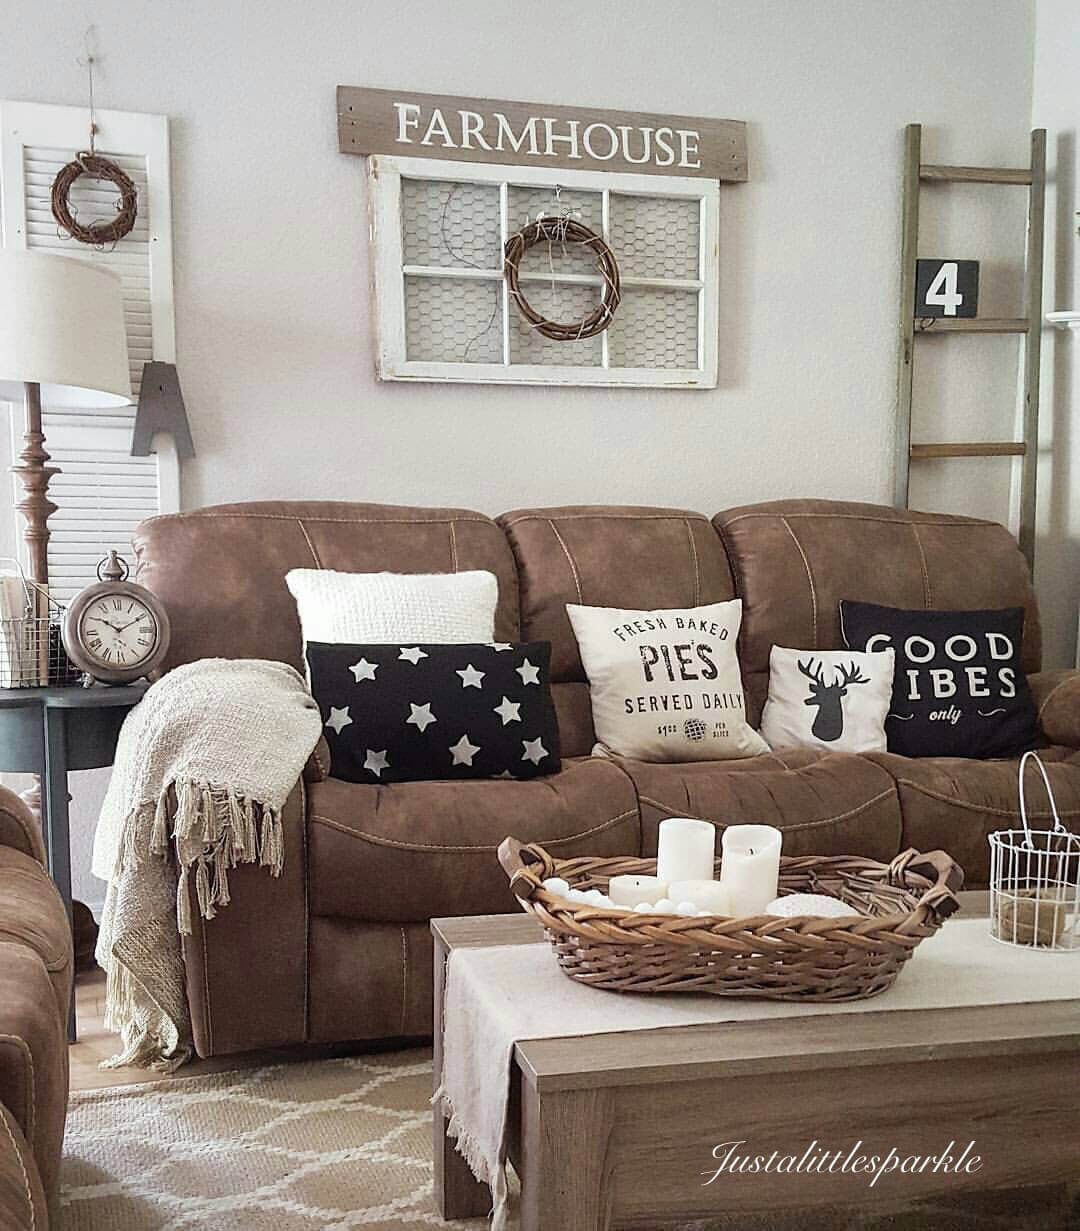 farmhouse decor farmhouse style living room decor split modern apartment decorating ideas Microfiber Couch Farmhouse Living Room Decor Ideas These pillows are so  cute!!!